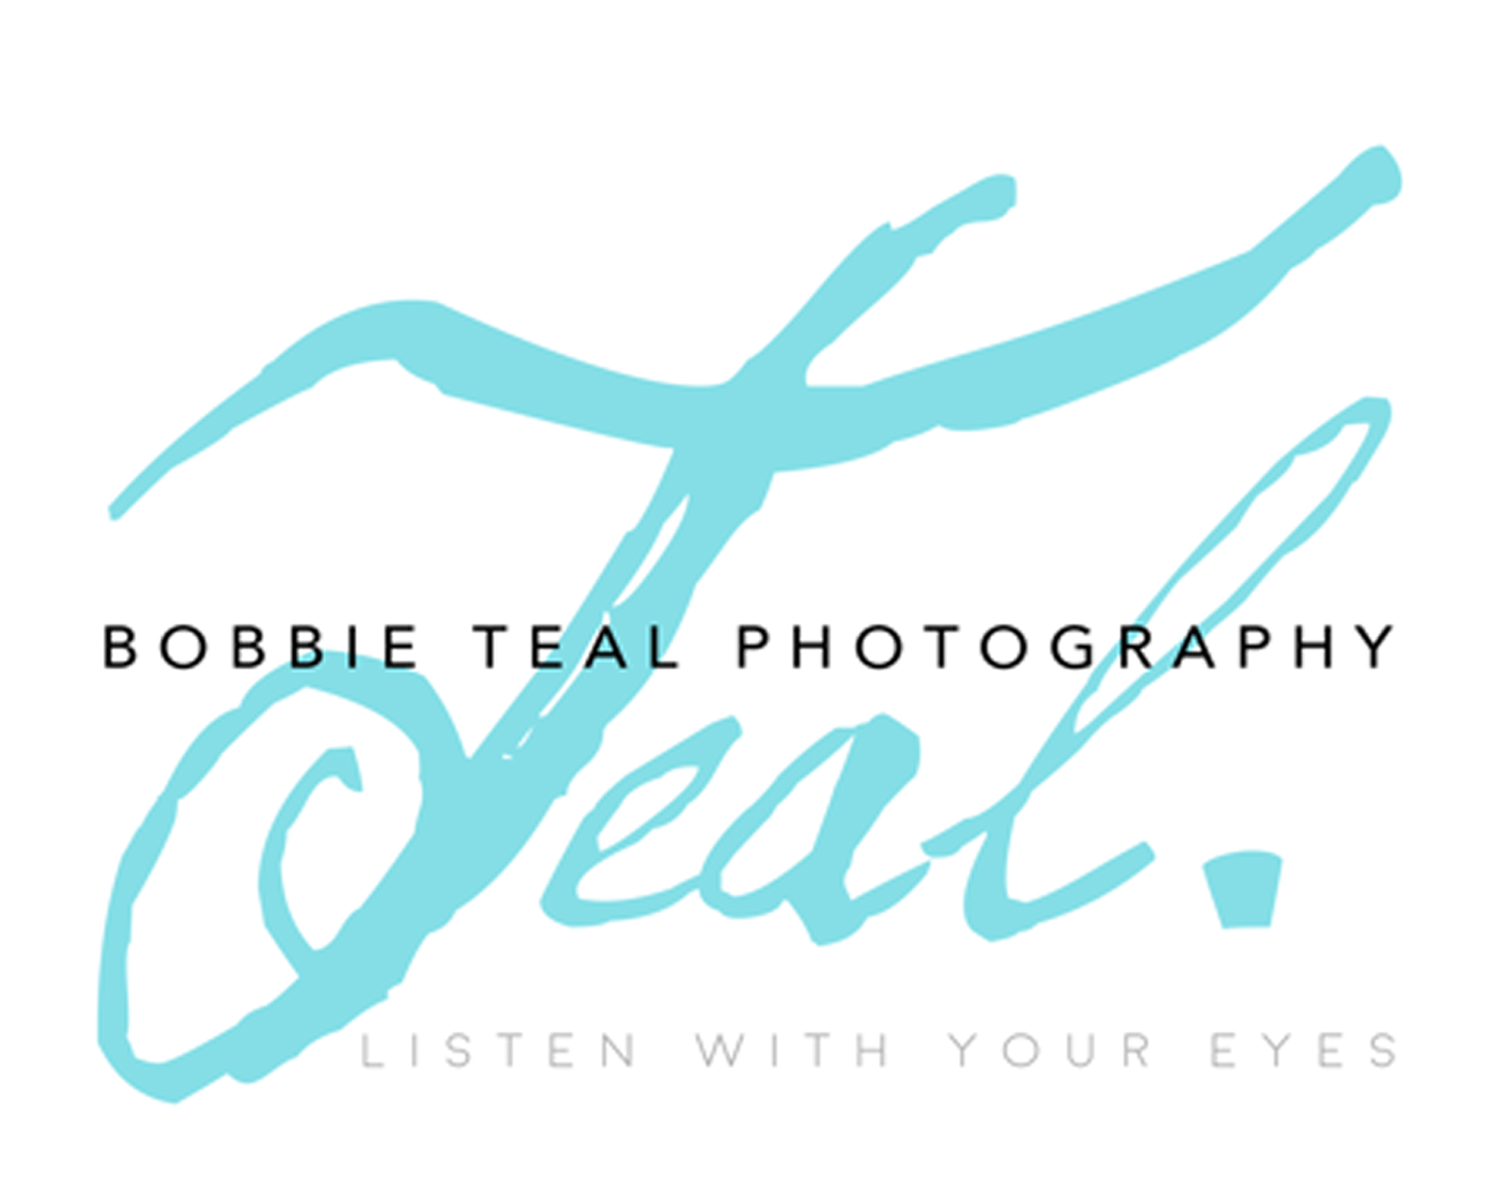 Bobbie Teal Photography